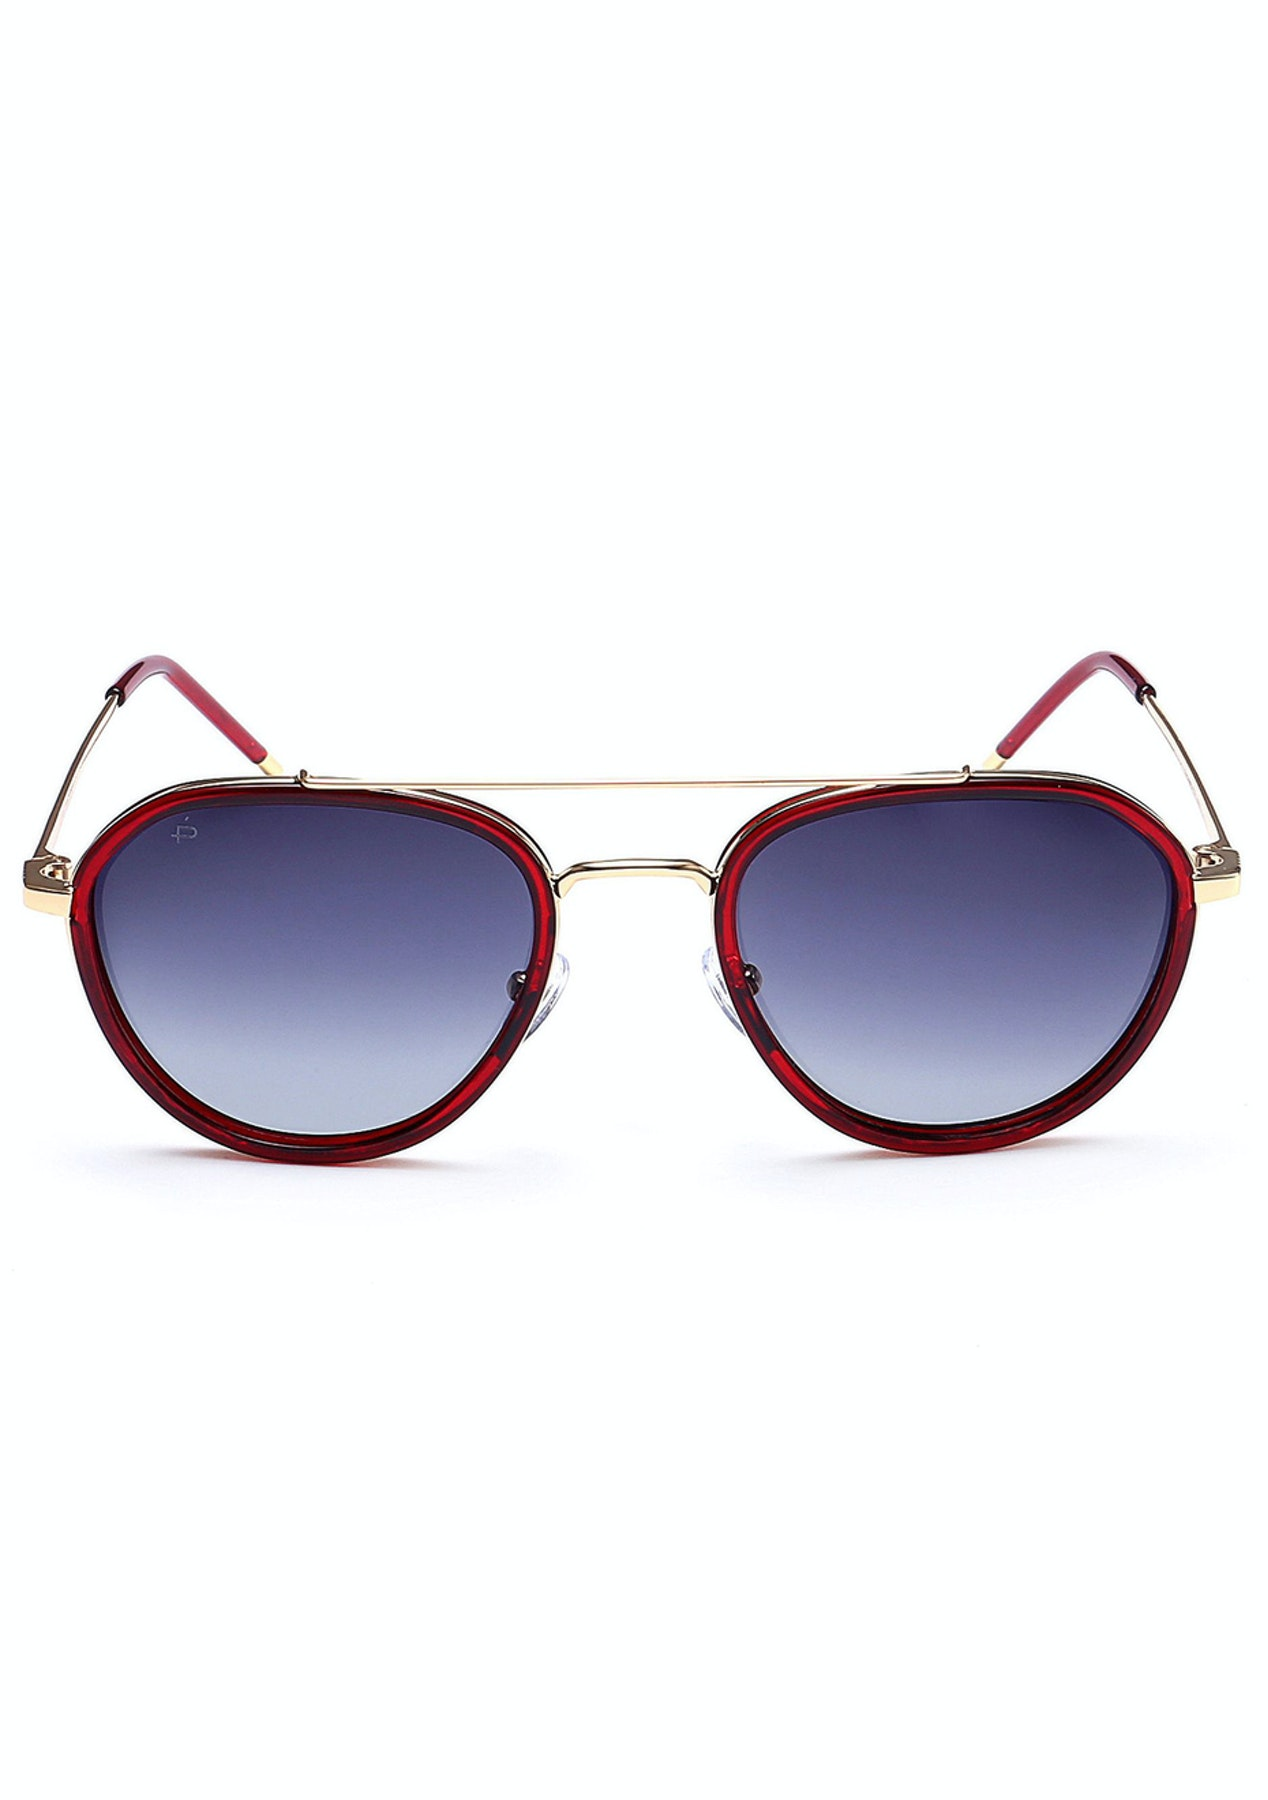 d86d888dcfa Prive© Revaux The Connoisseur Polarised Sunglasses - Red - Prive Revaux  Sunglasses - Onceit